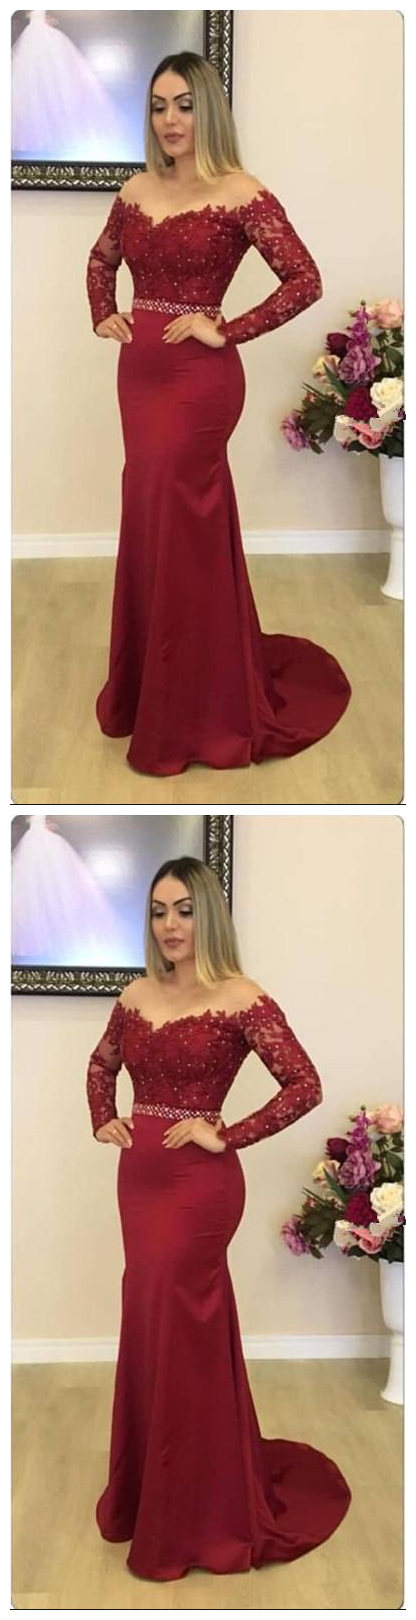 Sexy Long Sleeves Mermaid Evening Dresses Lace Appliques Arabic Dubai Prom Party